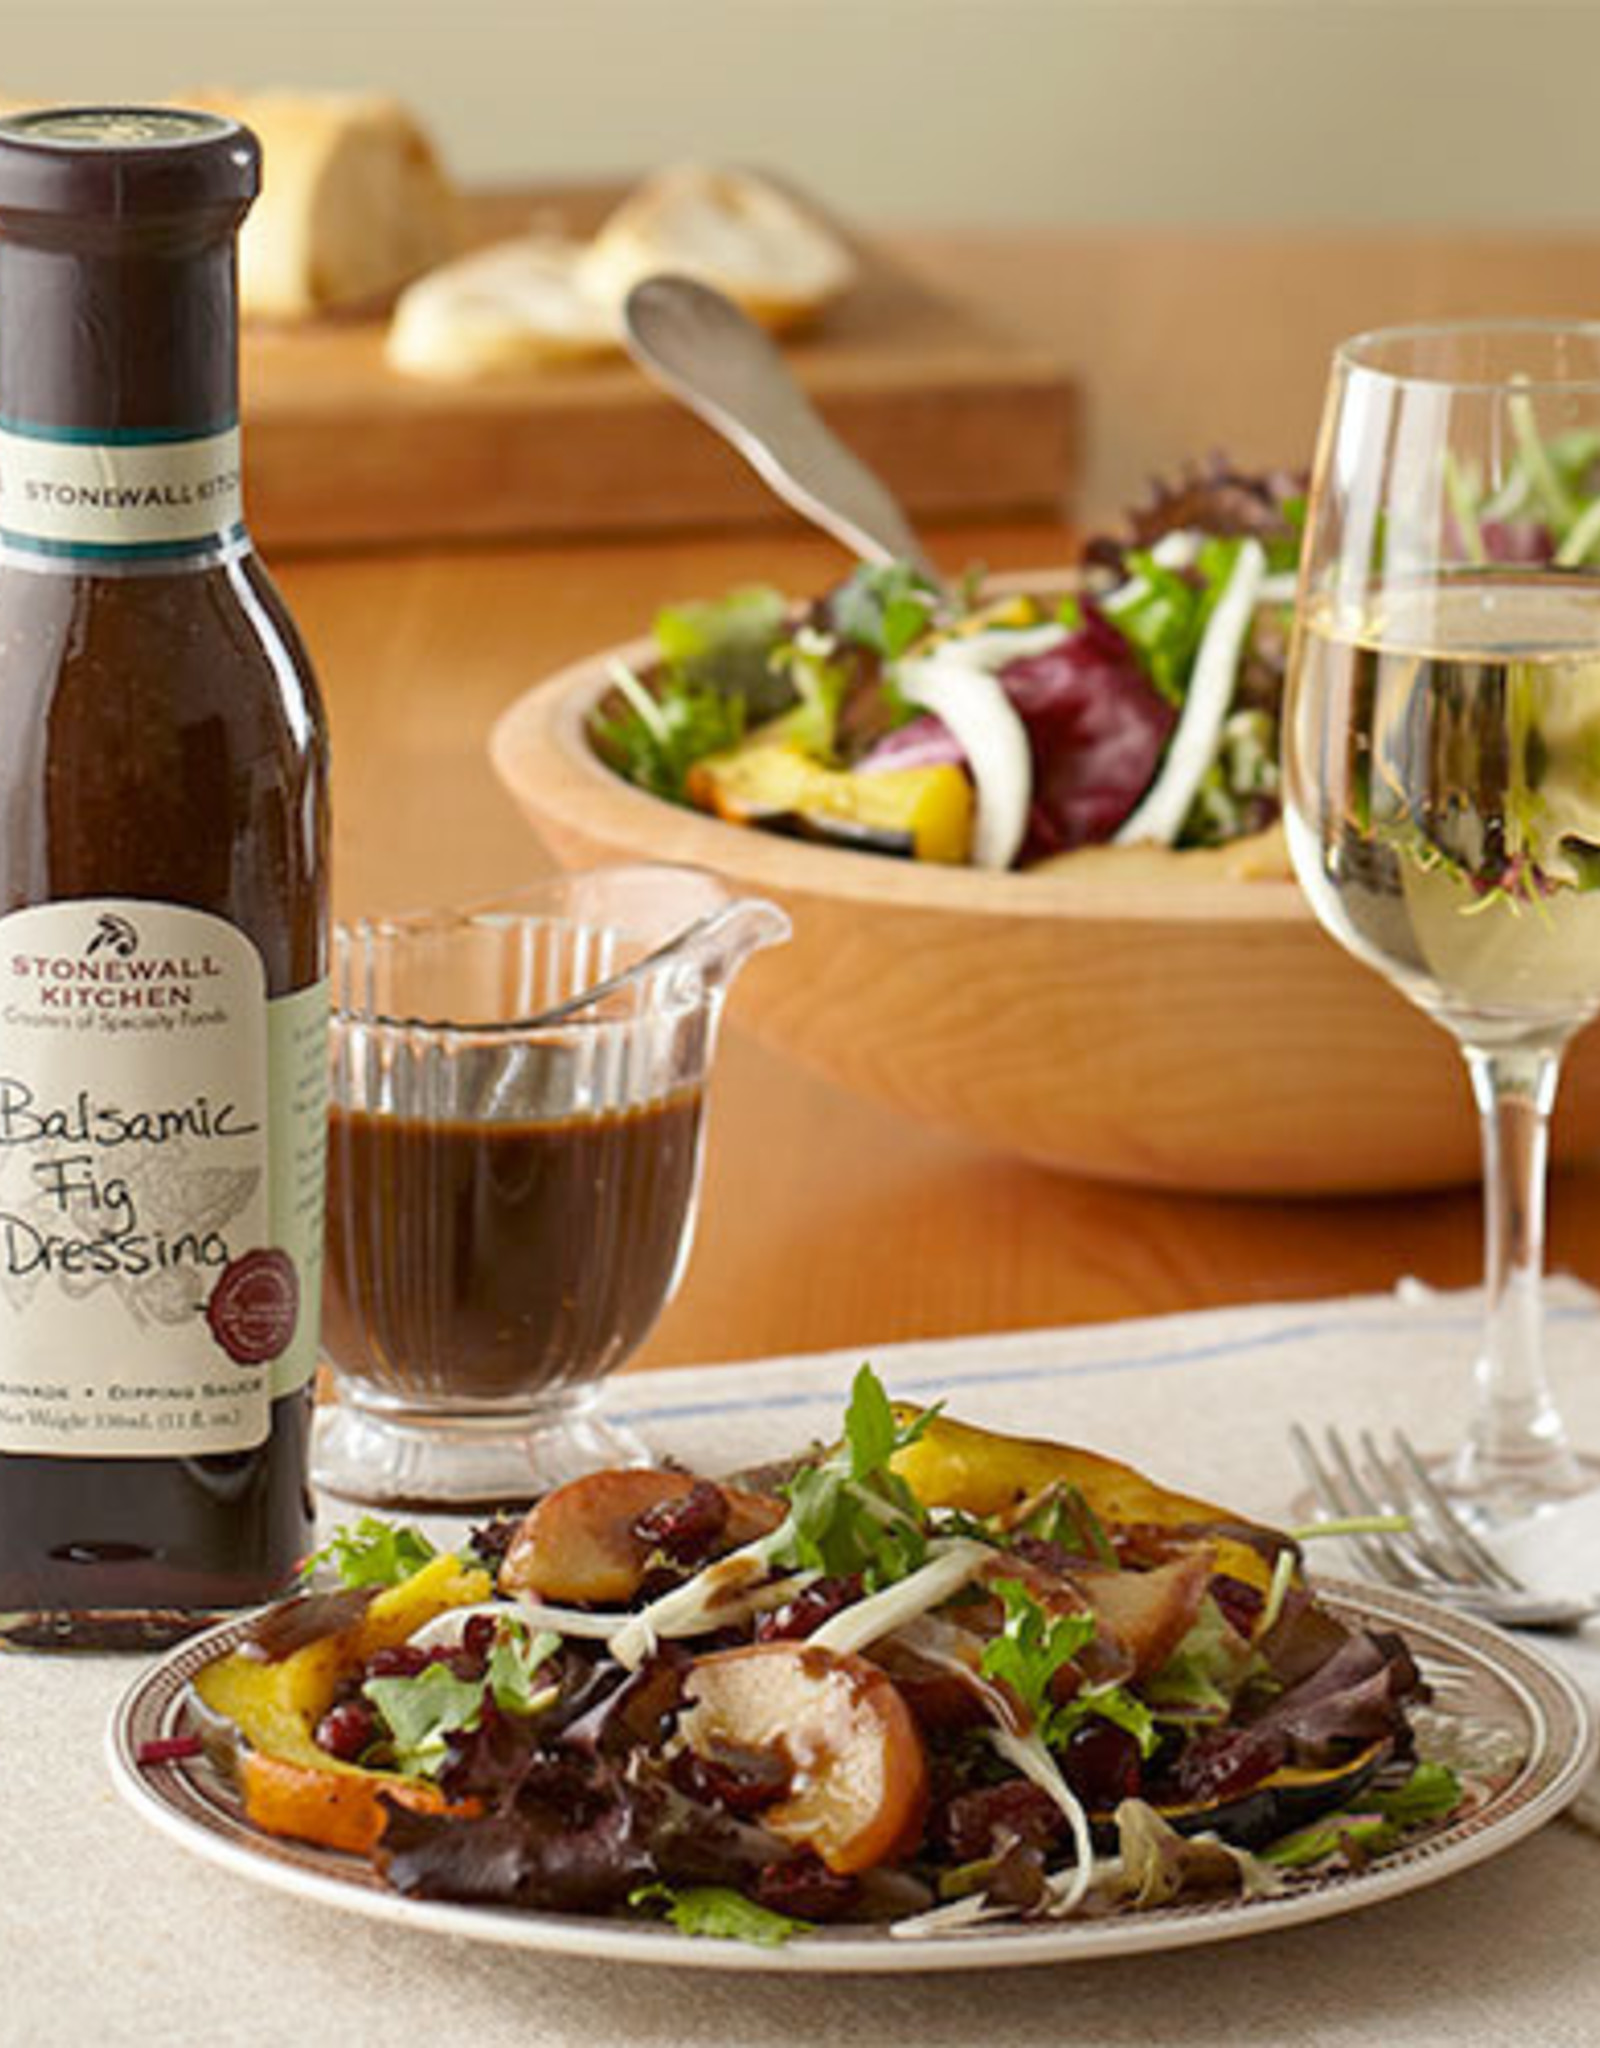 Stonewall Kitchen Balsamic Fig Dressing